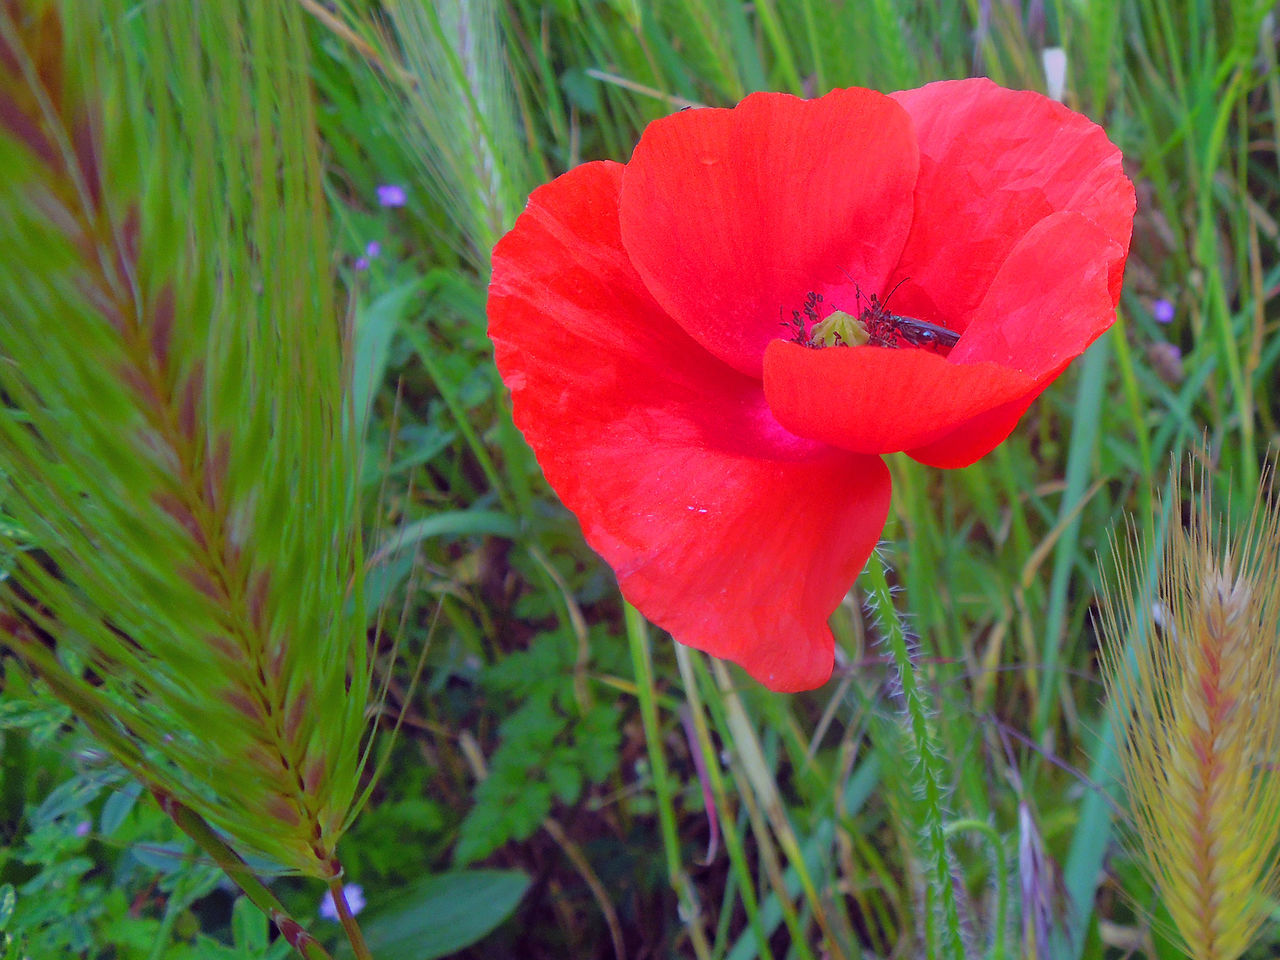 Beauty In Nature Blooming Close-up Day Flower Flower Head Fragility Freshness Growth Mohnblume Nature No People Outdoors Petal Plant Poppy Flowers Red